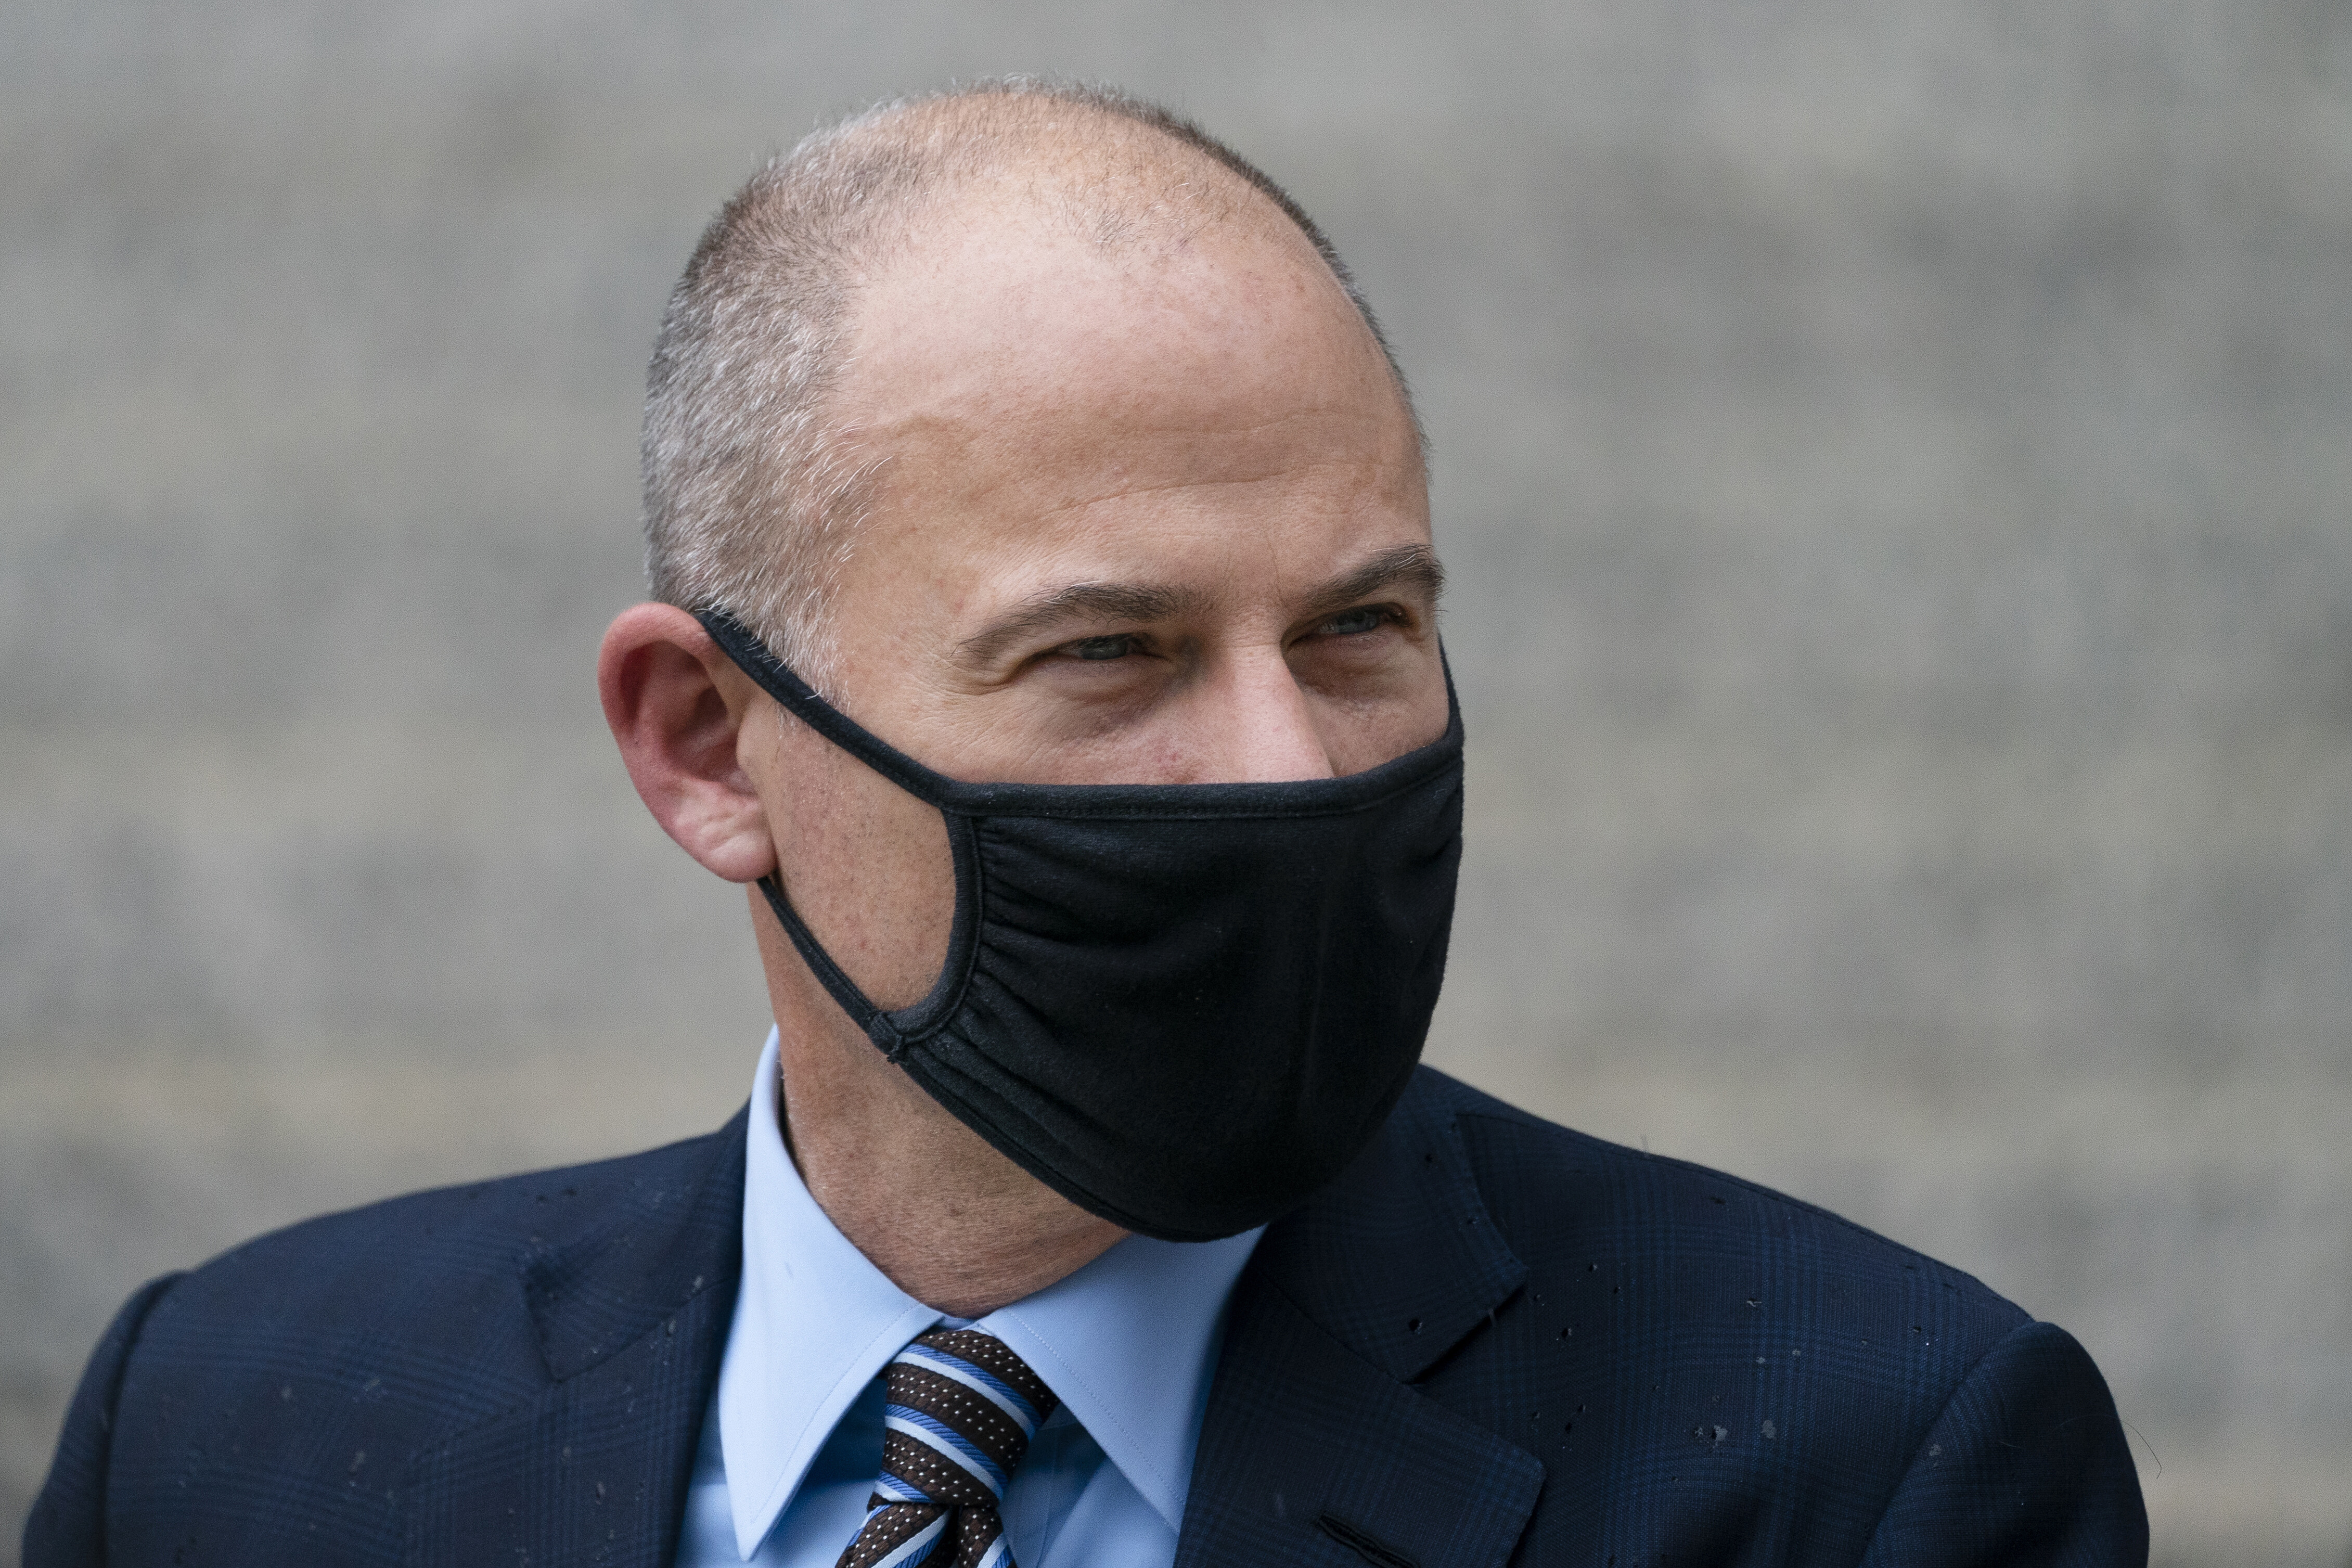 Michael Avenatti, newly sentenced for extortion, faces trial this week for allegedly defrauding clients